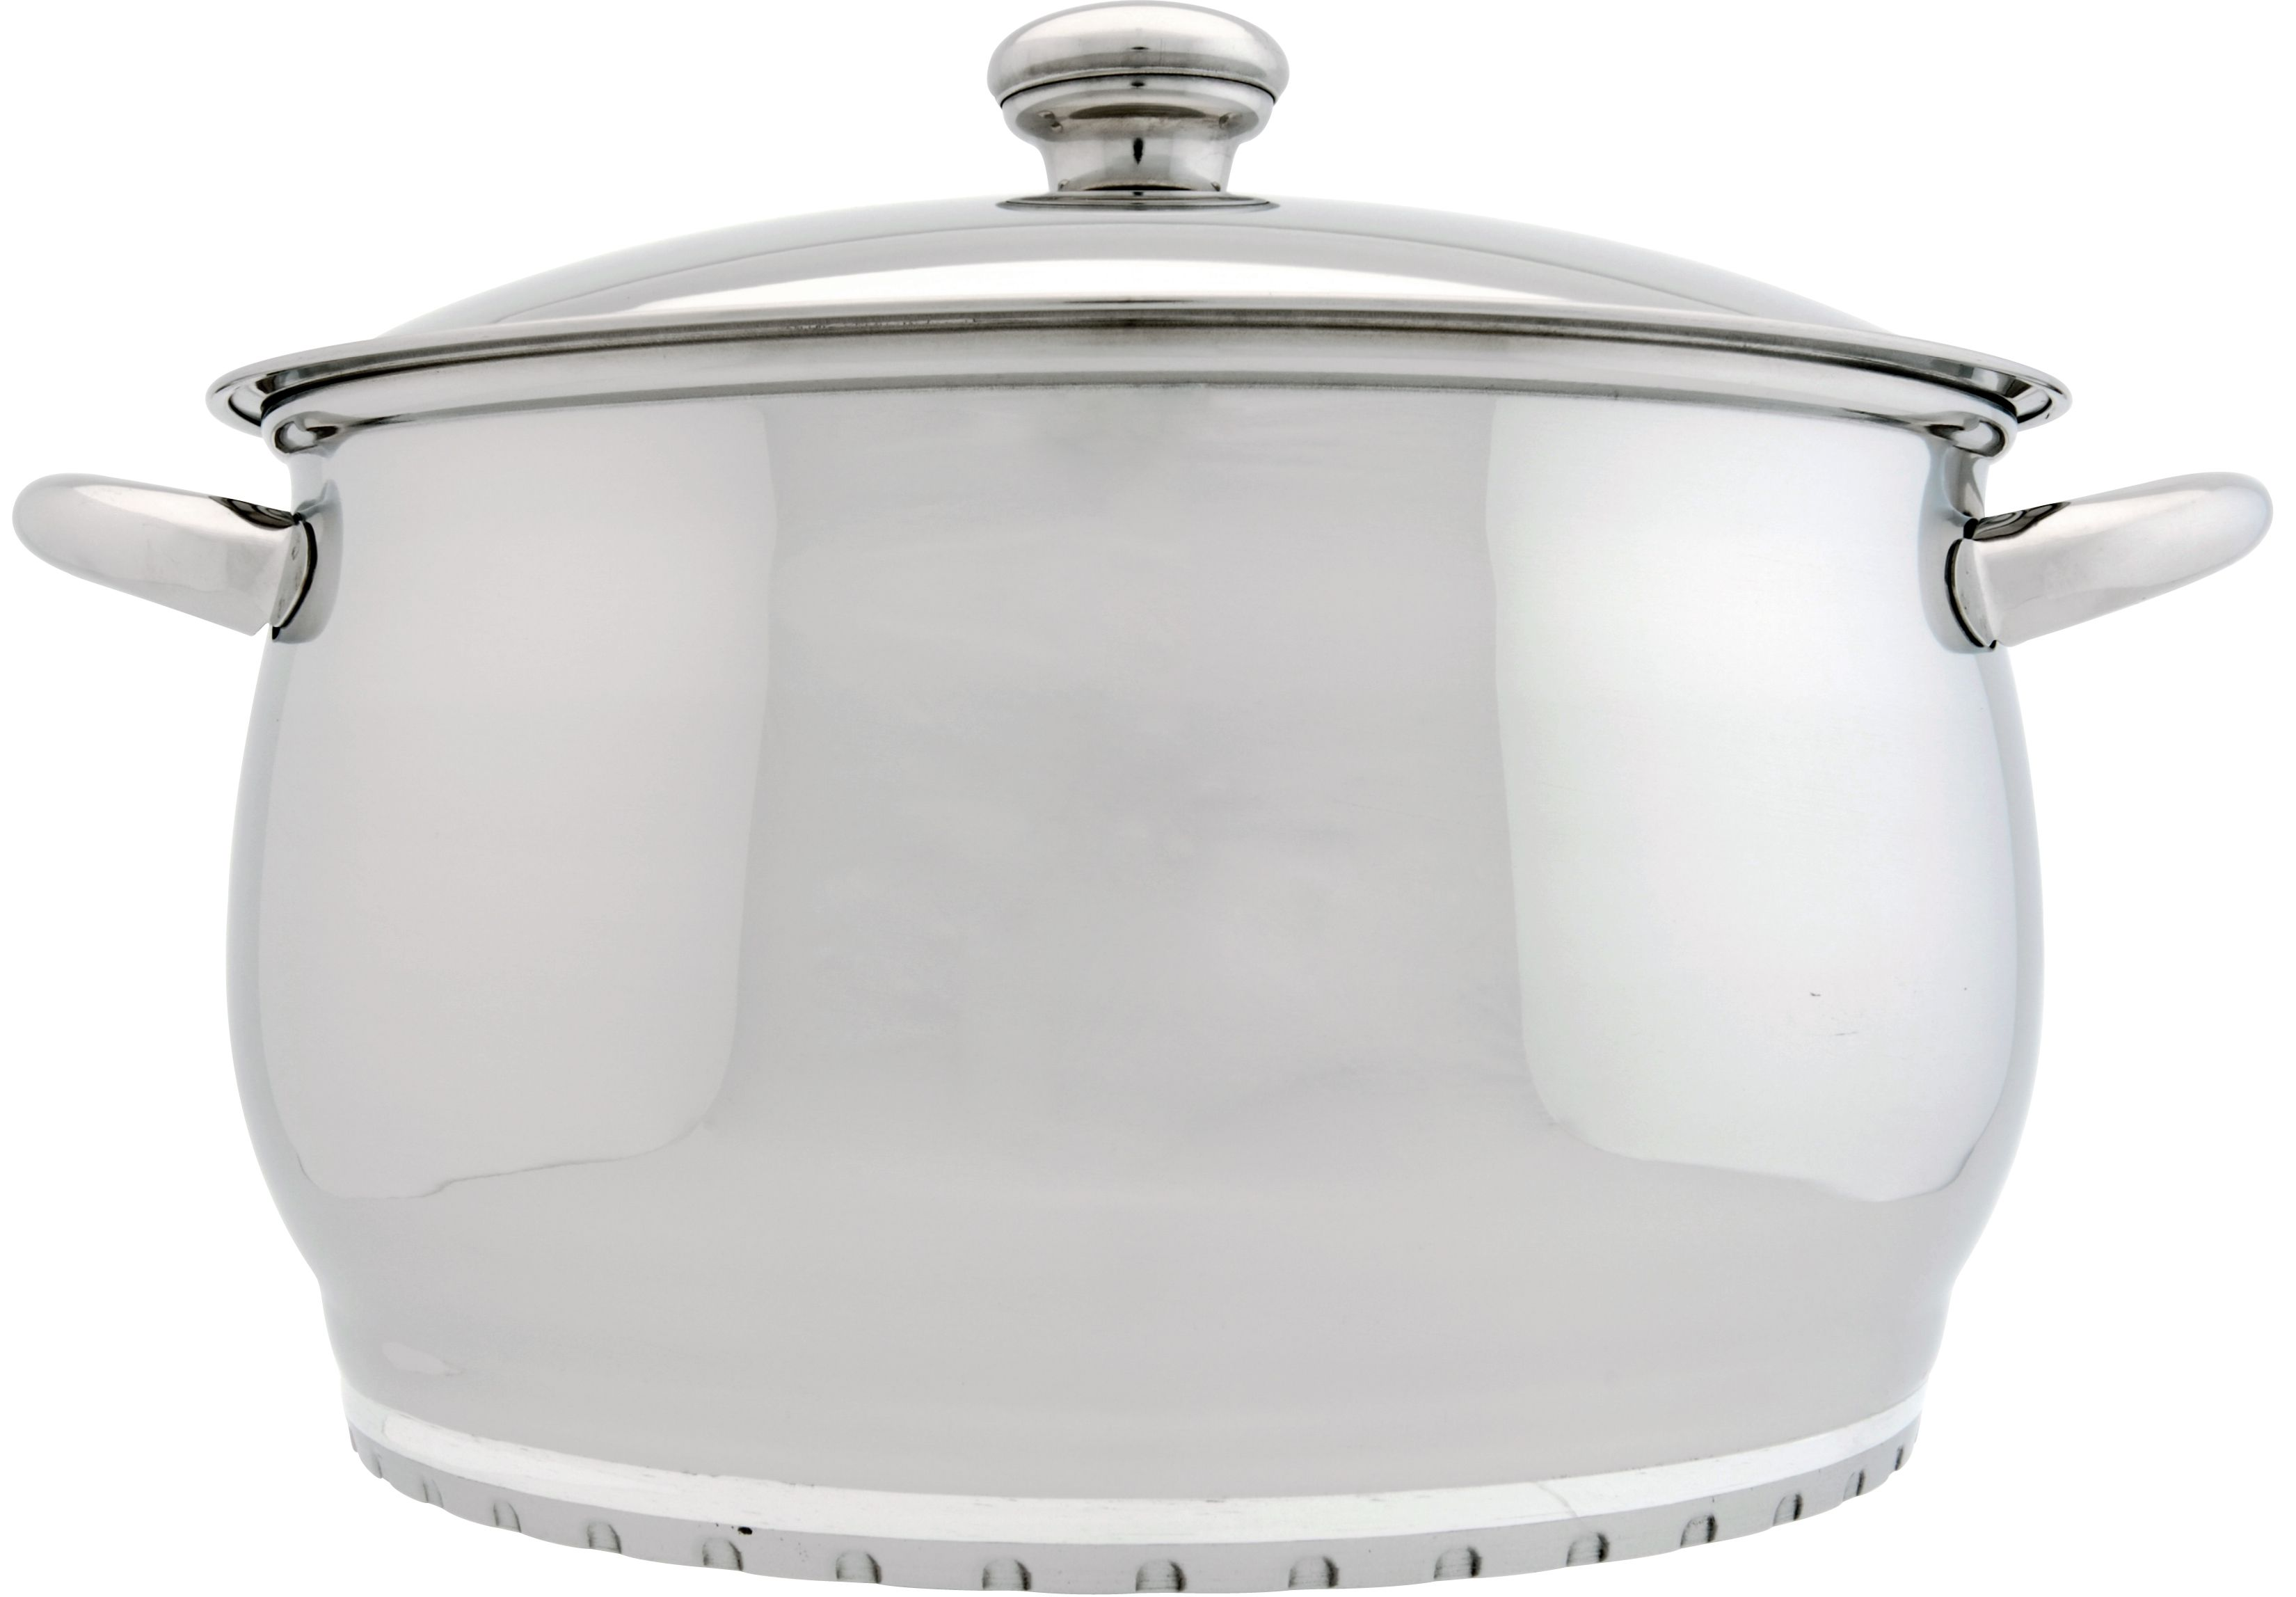 BergHOFF Cosmo 10'' Covered Stock Pot 7Qt, Silver Steel